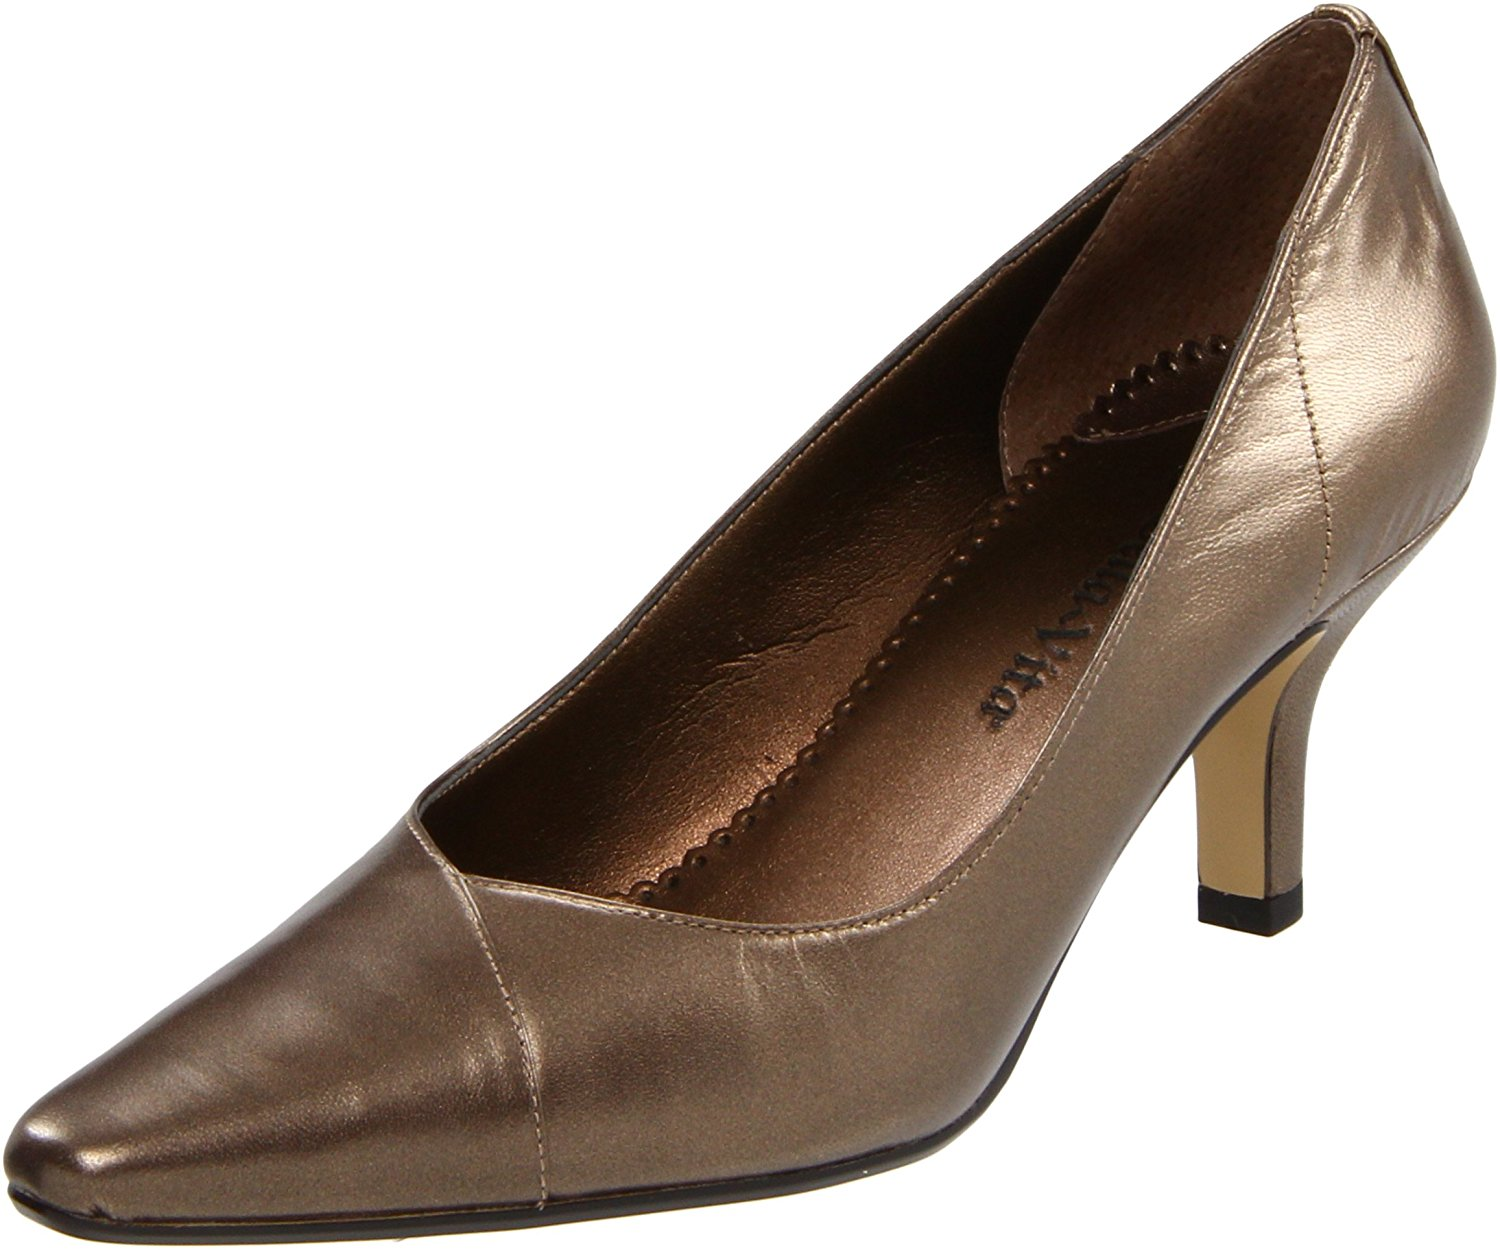 Bella Vita Womens Wow Leather Pointed Toe Classic Pumps by Bella Vita